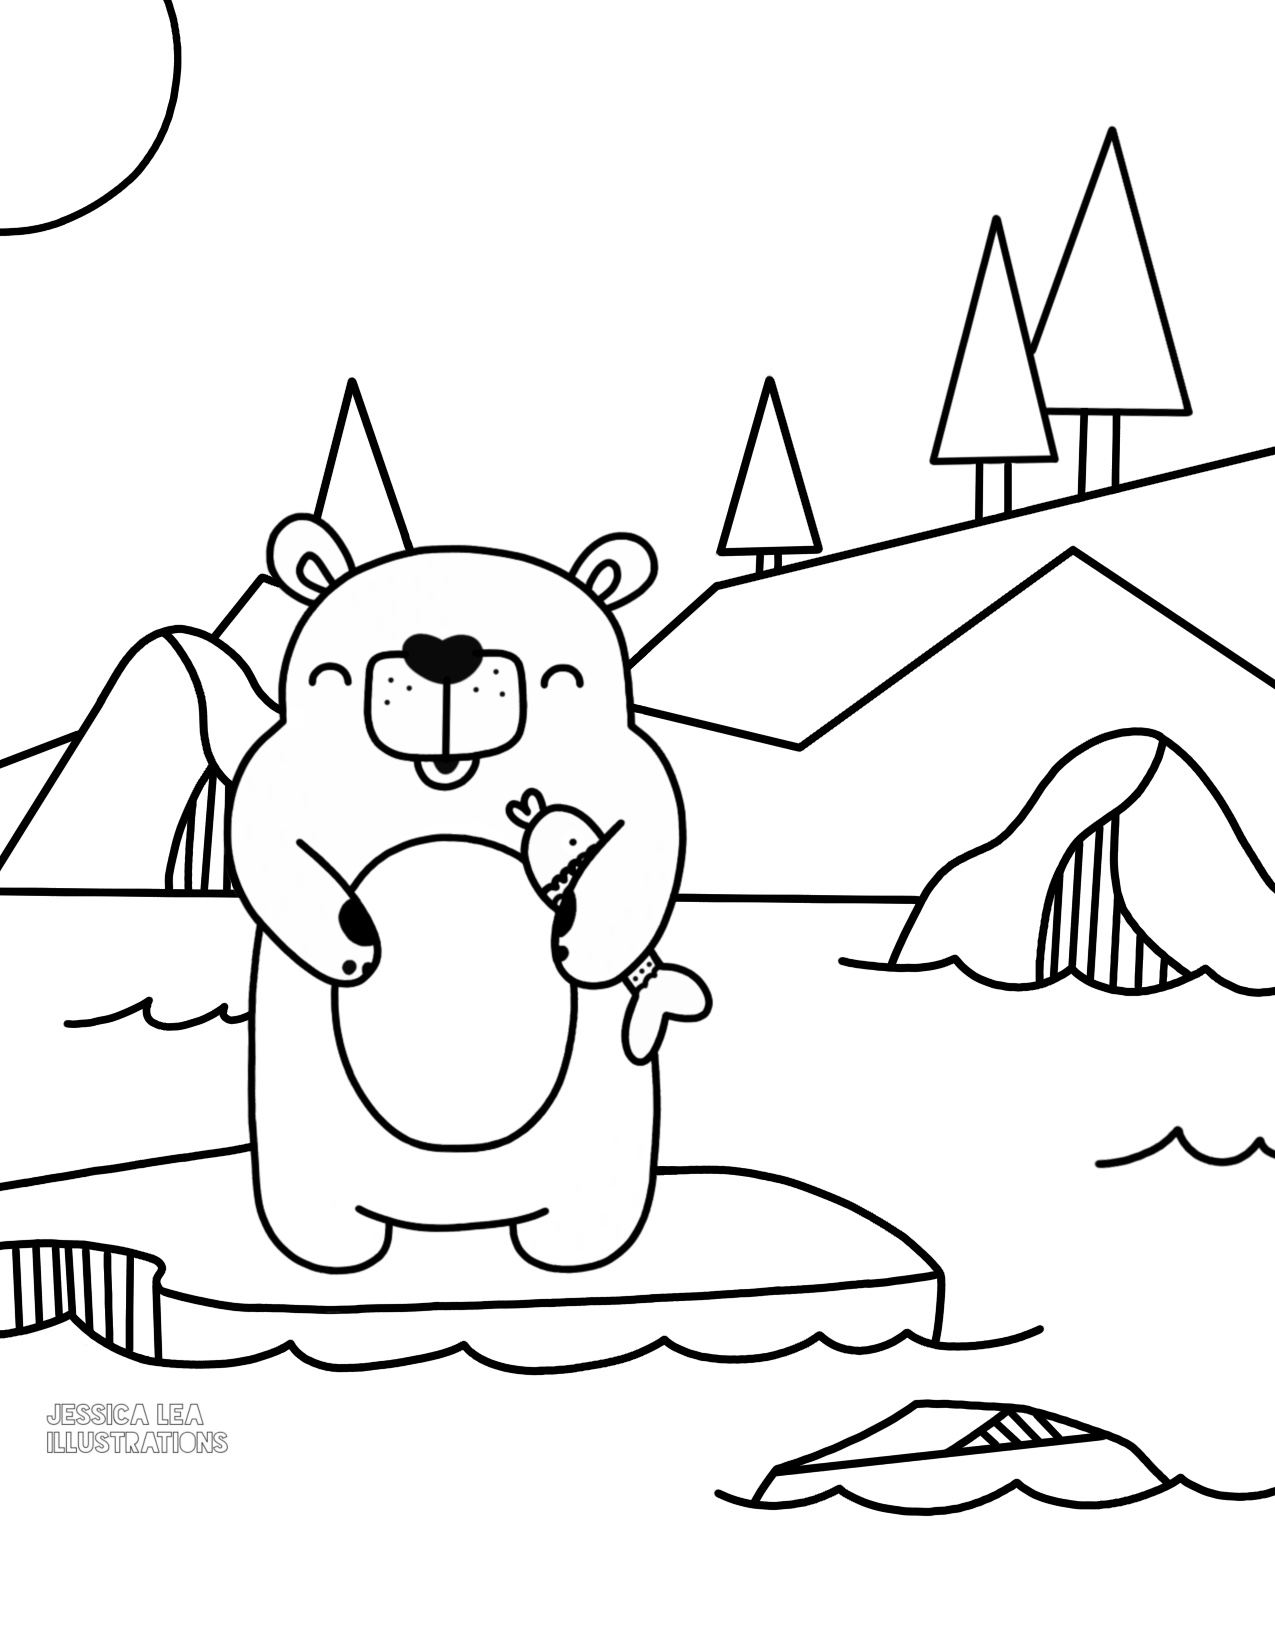 Polar Bear Printable Coloring Pages At Getdrawings